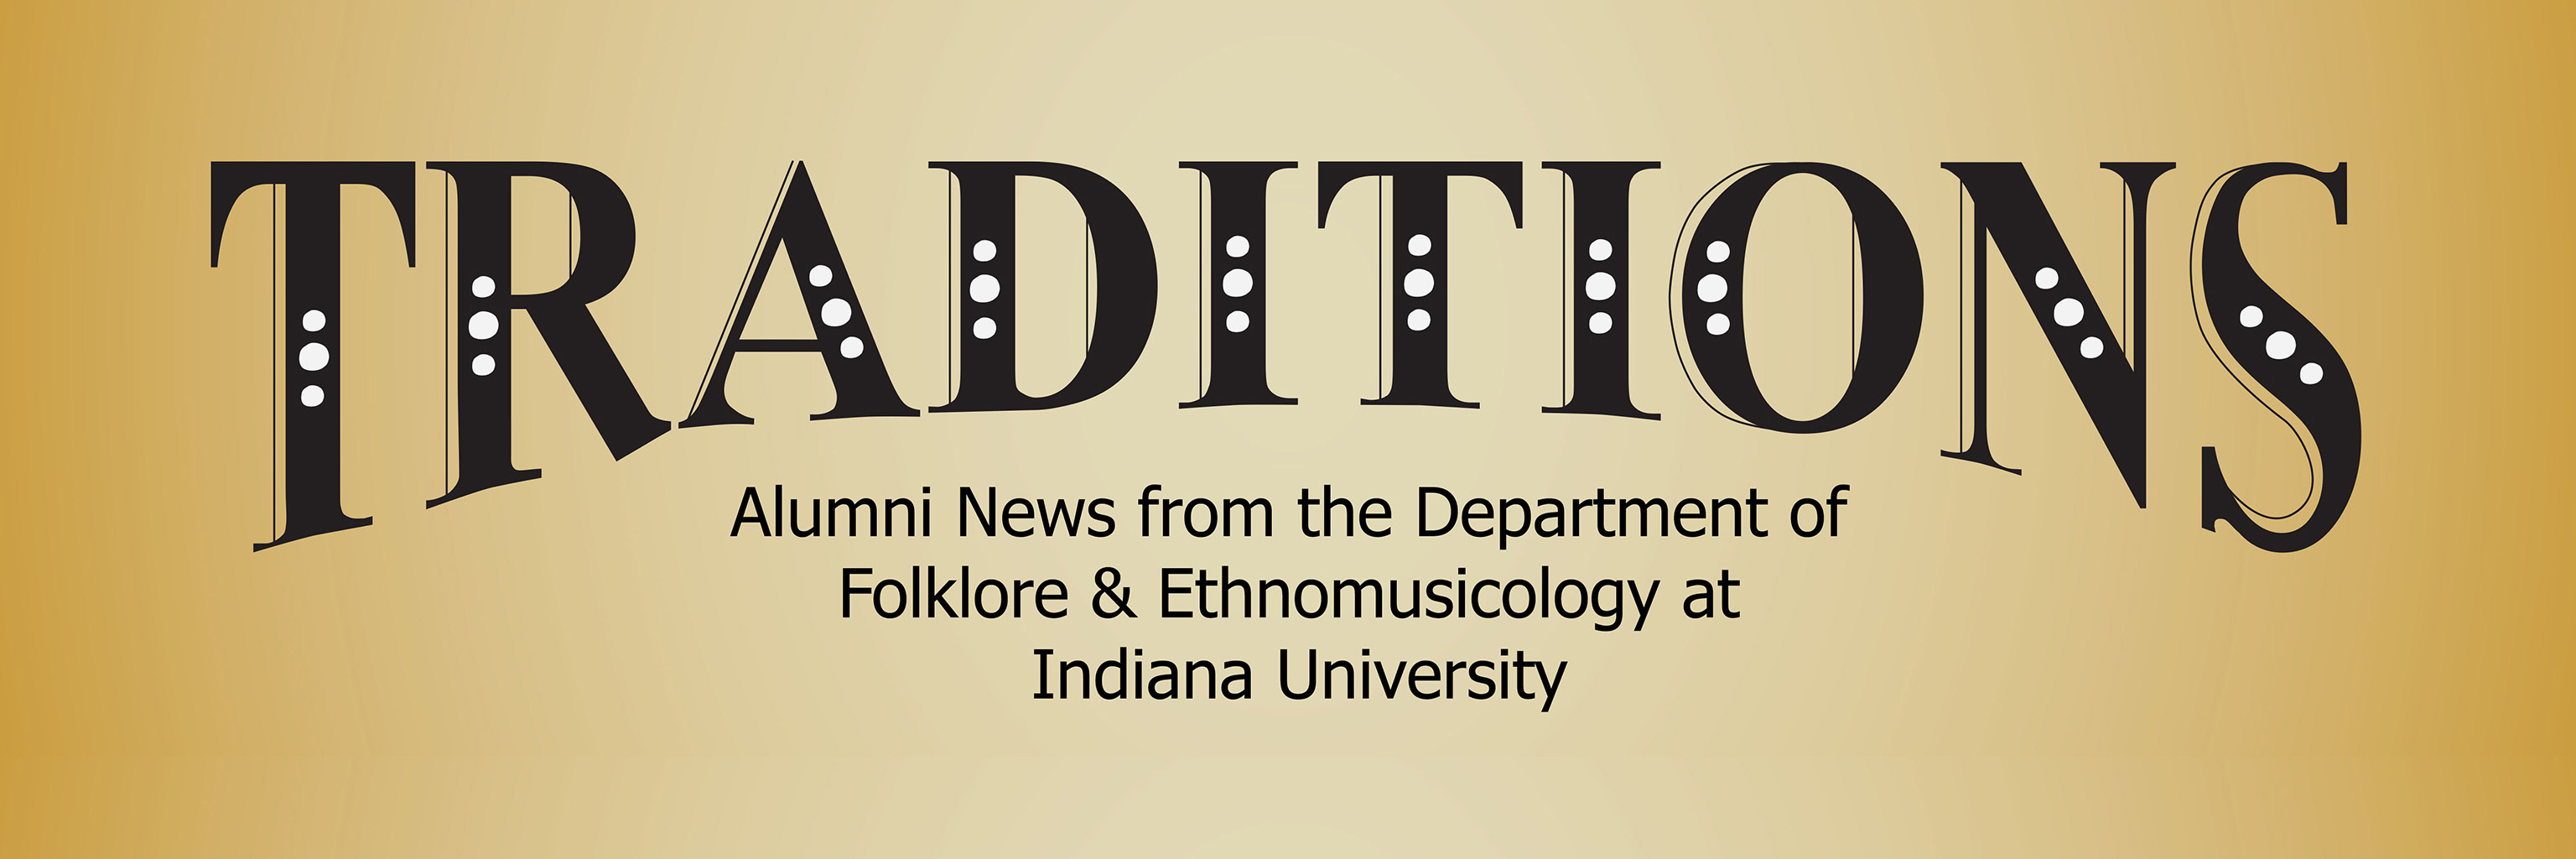 "Image reading, ""Traditions: Alumni News from the Department of Folklore and Ethnomusicology at Indiana University."""